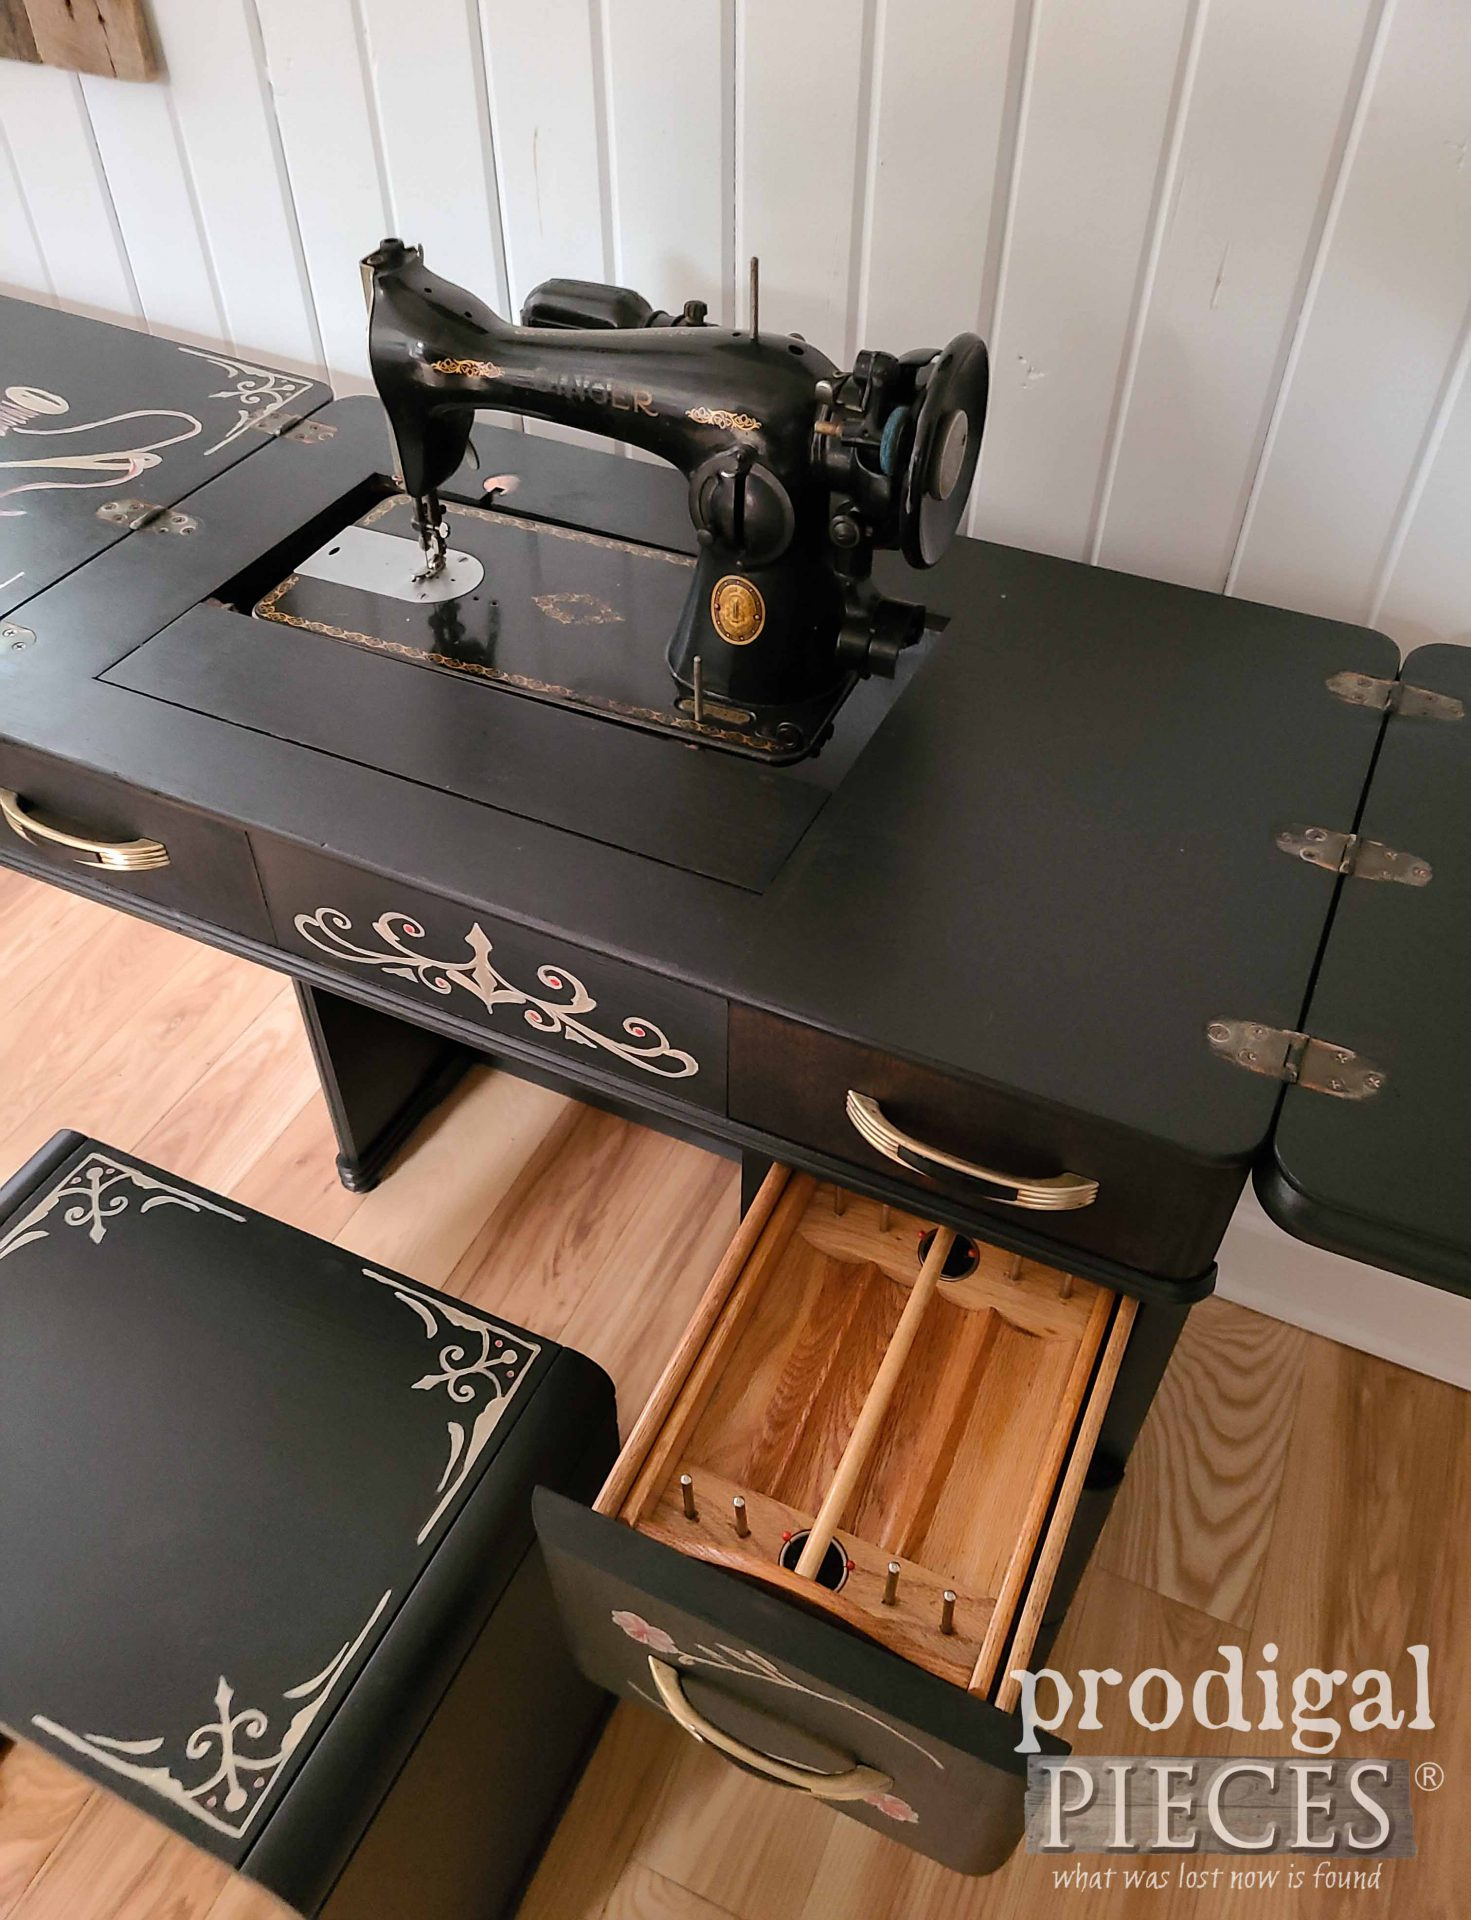 Sewing Notion Drawer with Removeable Tote in Art Deco Sewing Desk by Larissa of Prodigal Pieces | prodigalpieces.com #prodigalpieces #antique #home #diy